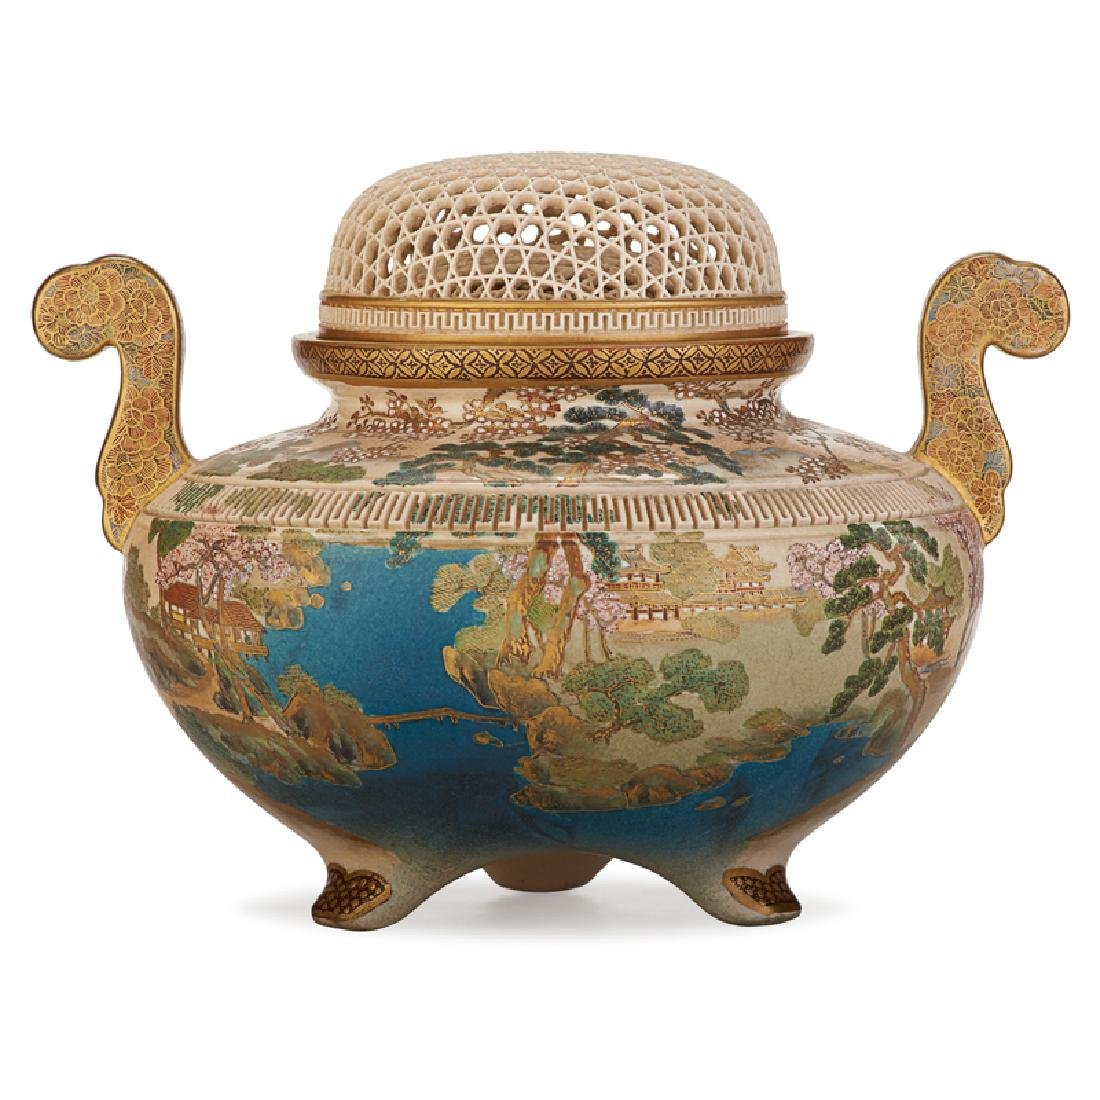 JAPANESE SATSUMA RETICULATED PORCELAIN CENSER